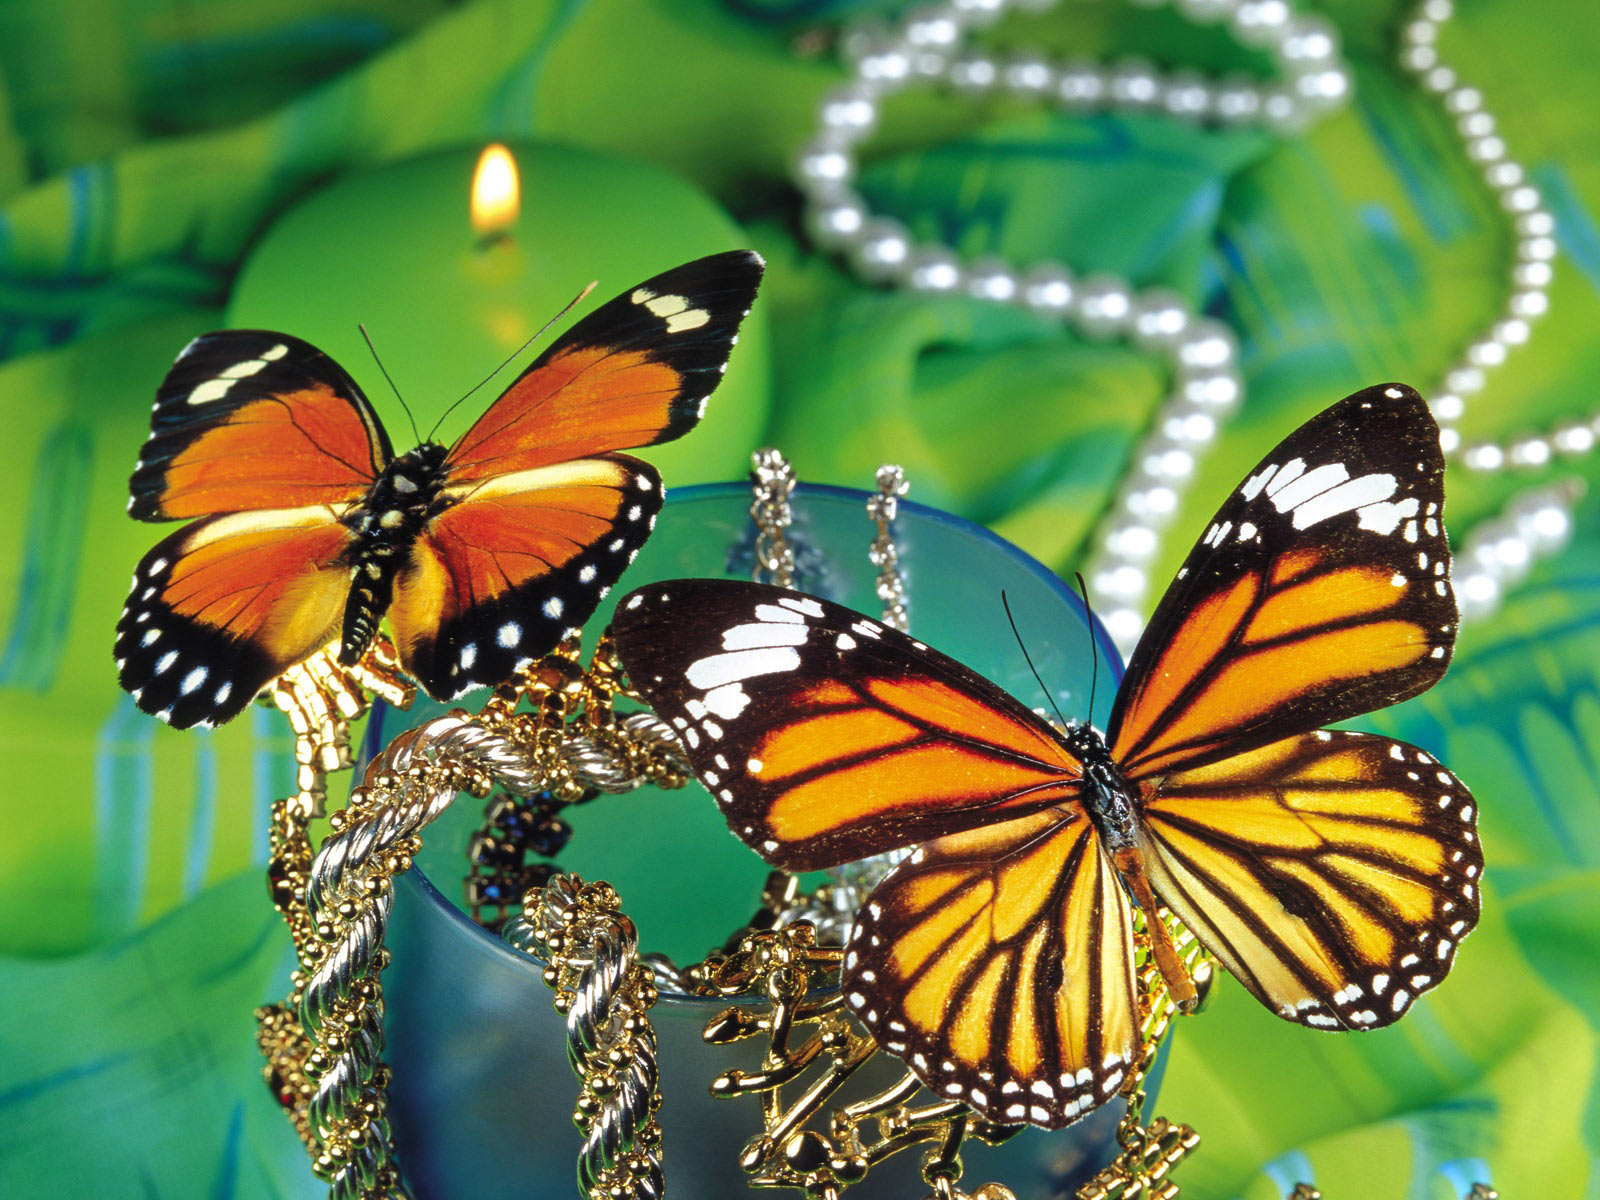 Beautiful Butterfly Wallpapers Free Download - Butterfly Singular Or Plural , HD Wallpaper & Backgrounds